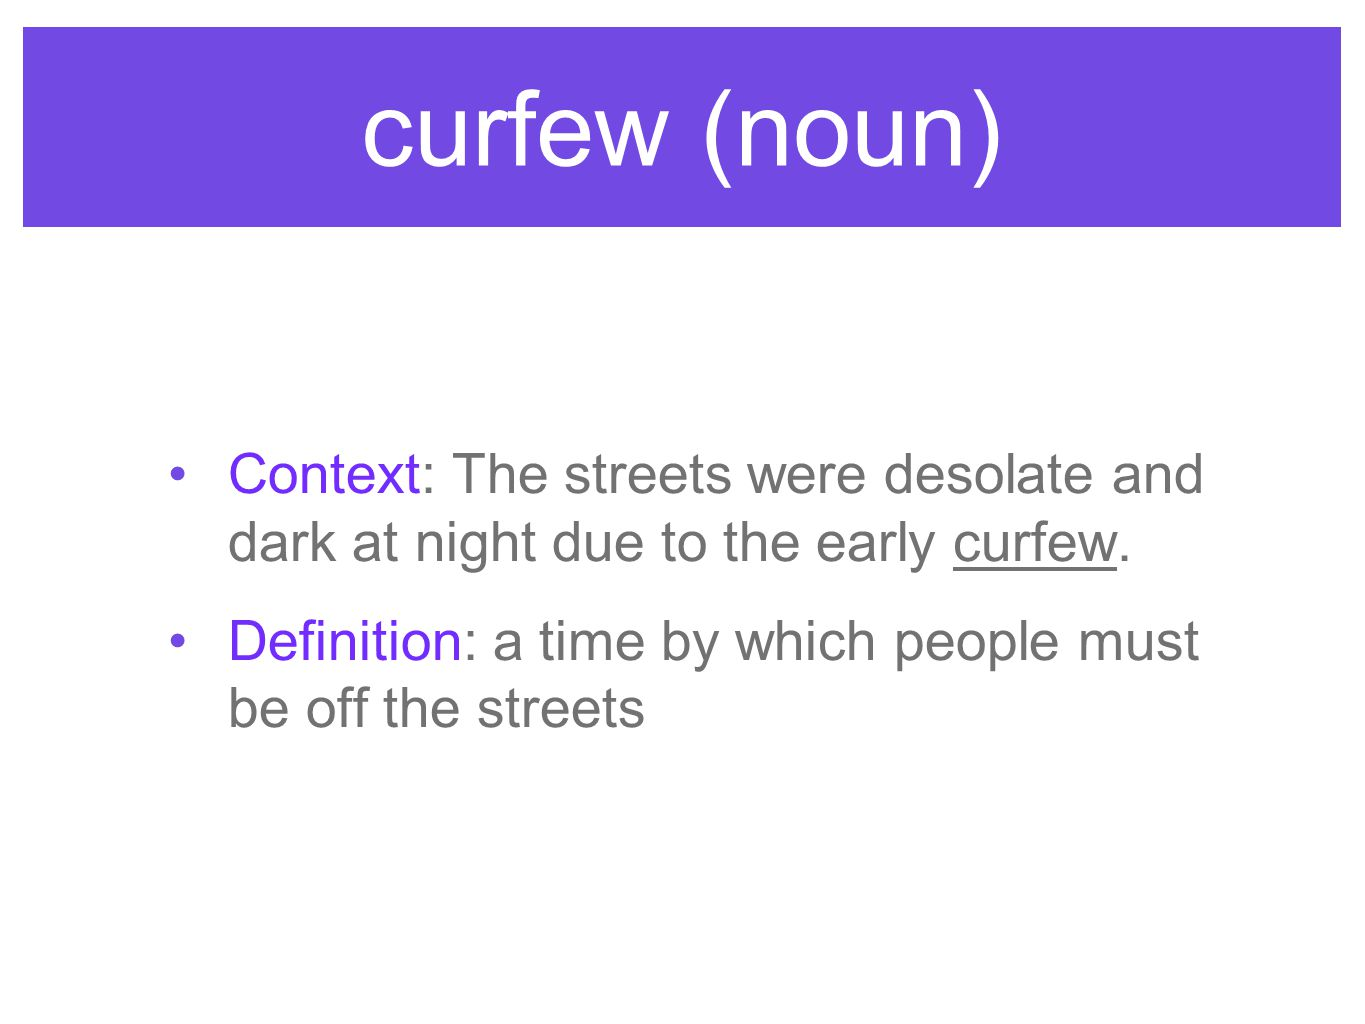 curfew (noun) Context: The streets were desolate and dark at night due to the early curfew. Definition: a time by which people must be off the streets